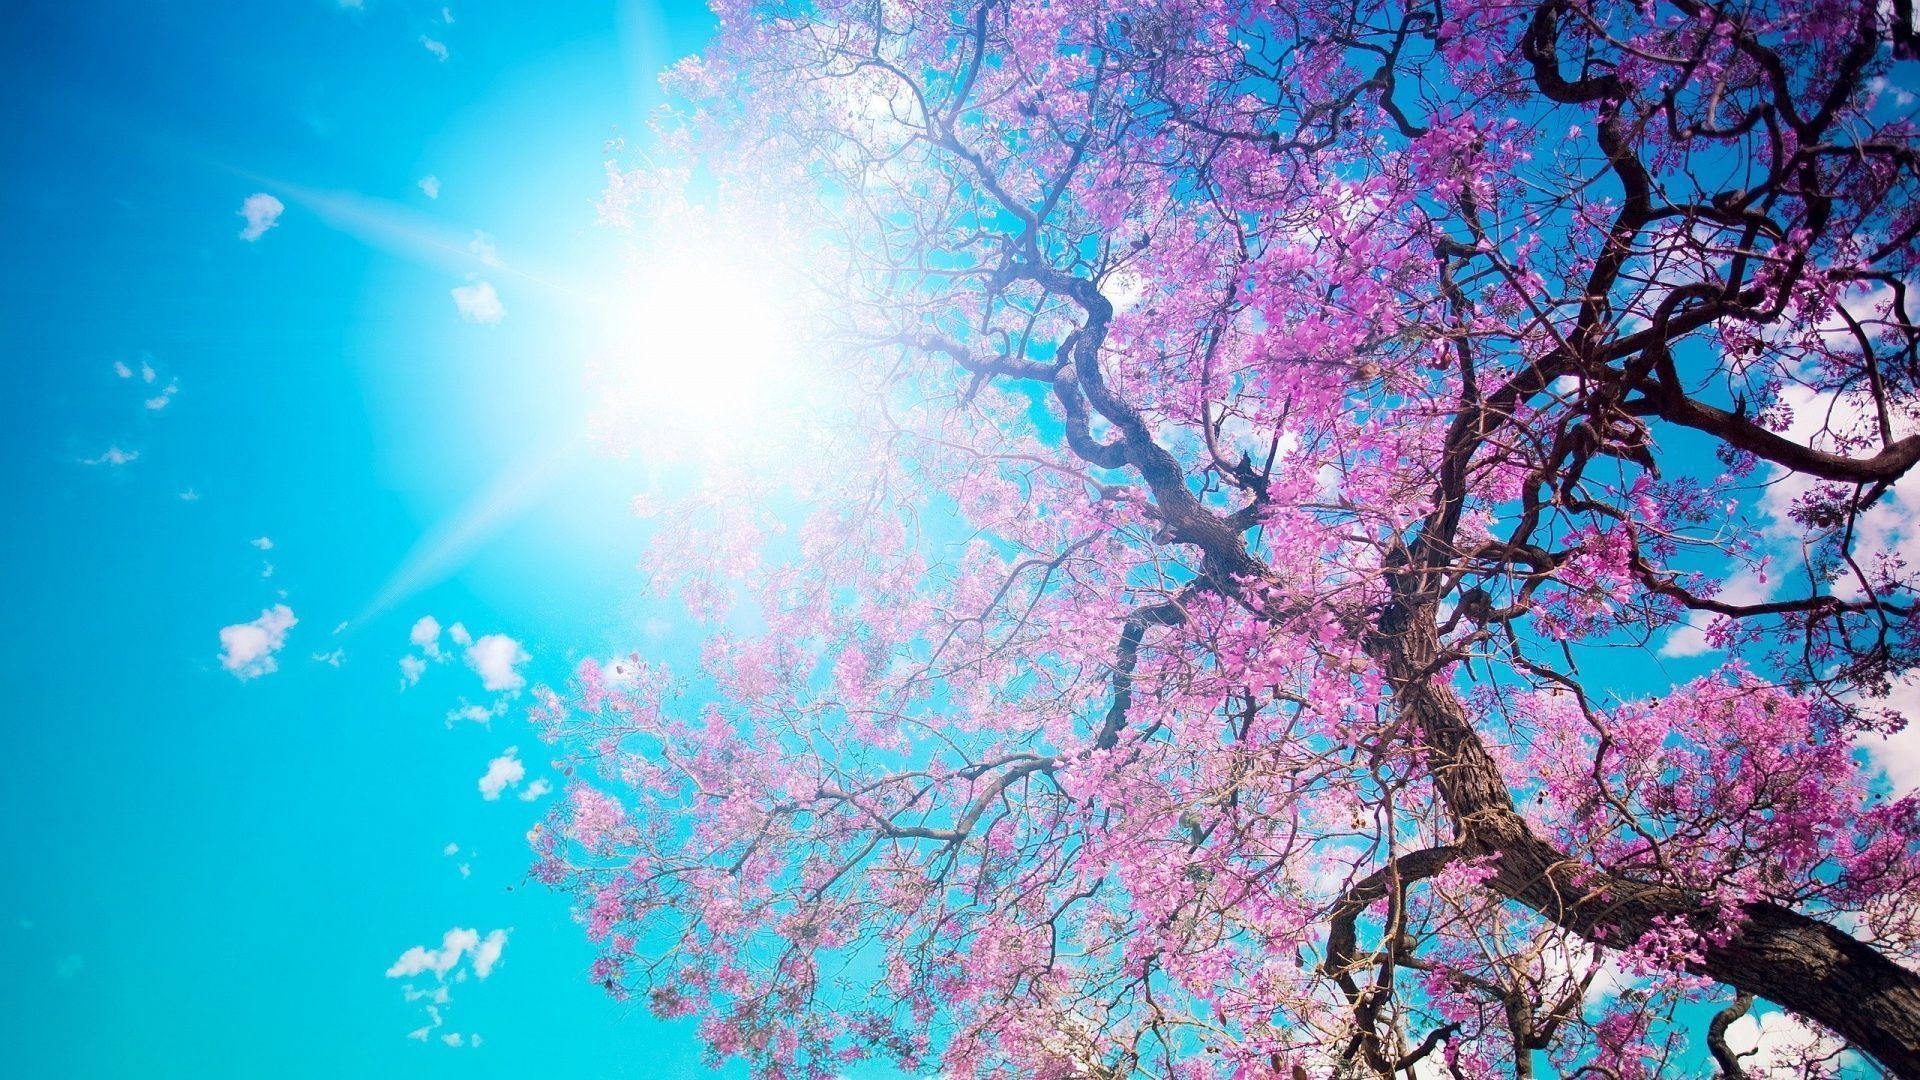 1920x1080 Spring Wallpaper Flowers G7M - Pretty Wallpapers HD